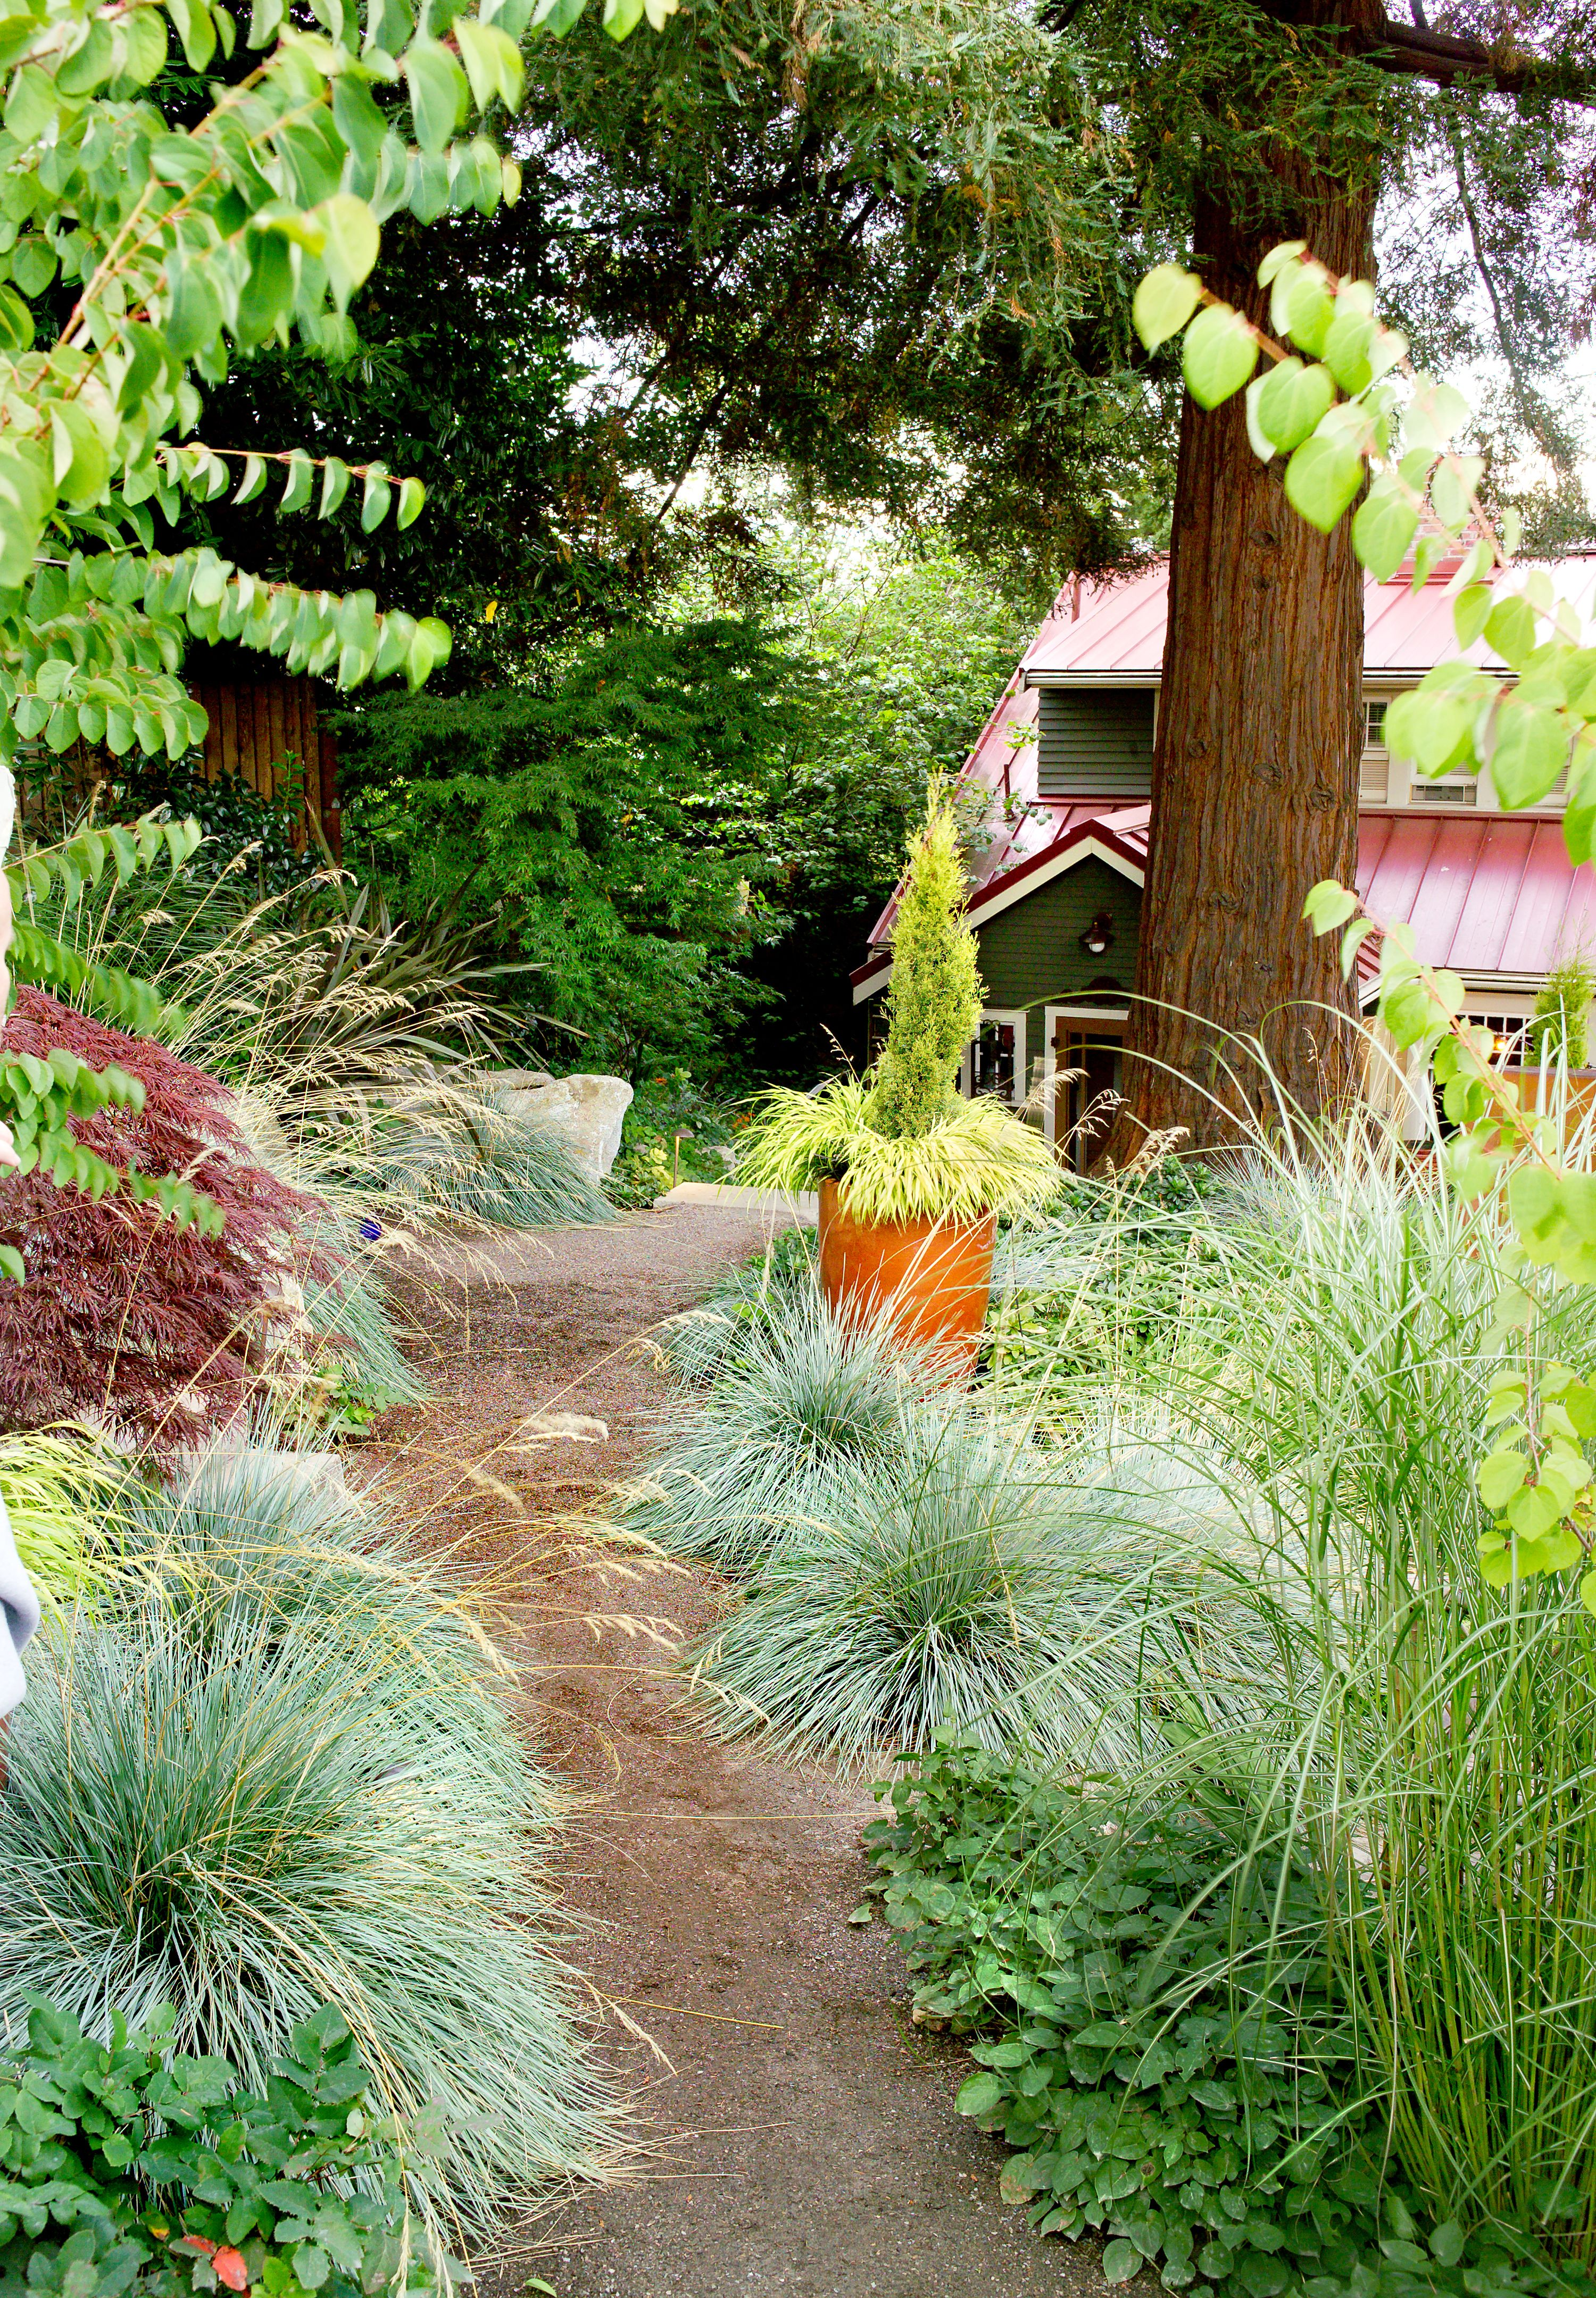 Ornamental Grass Is A Low Maintenance Drought Resistant Plant Wonder Drought Resistant Plants Front House Landscaping Ornamental Grasses